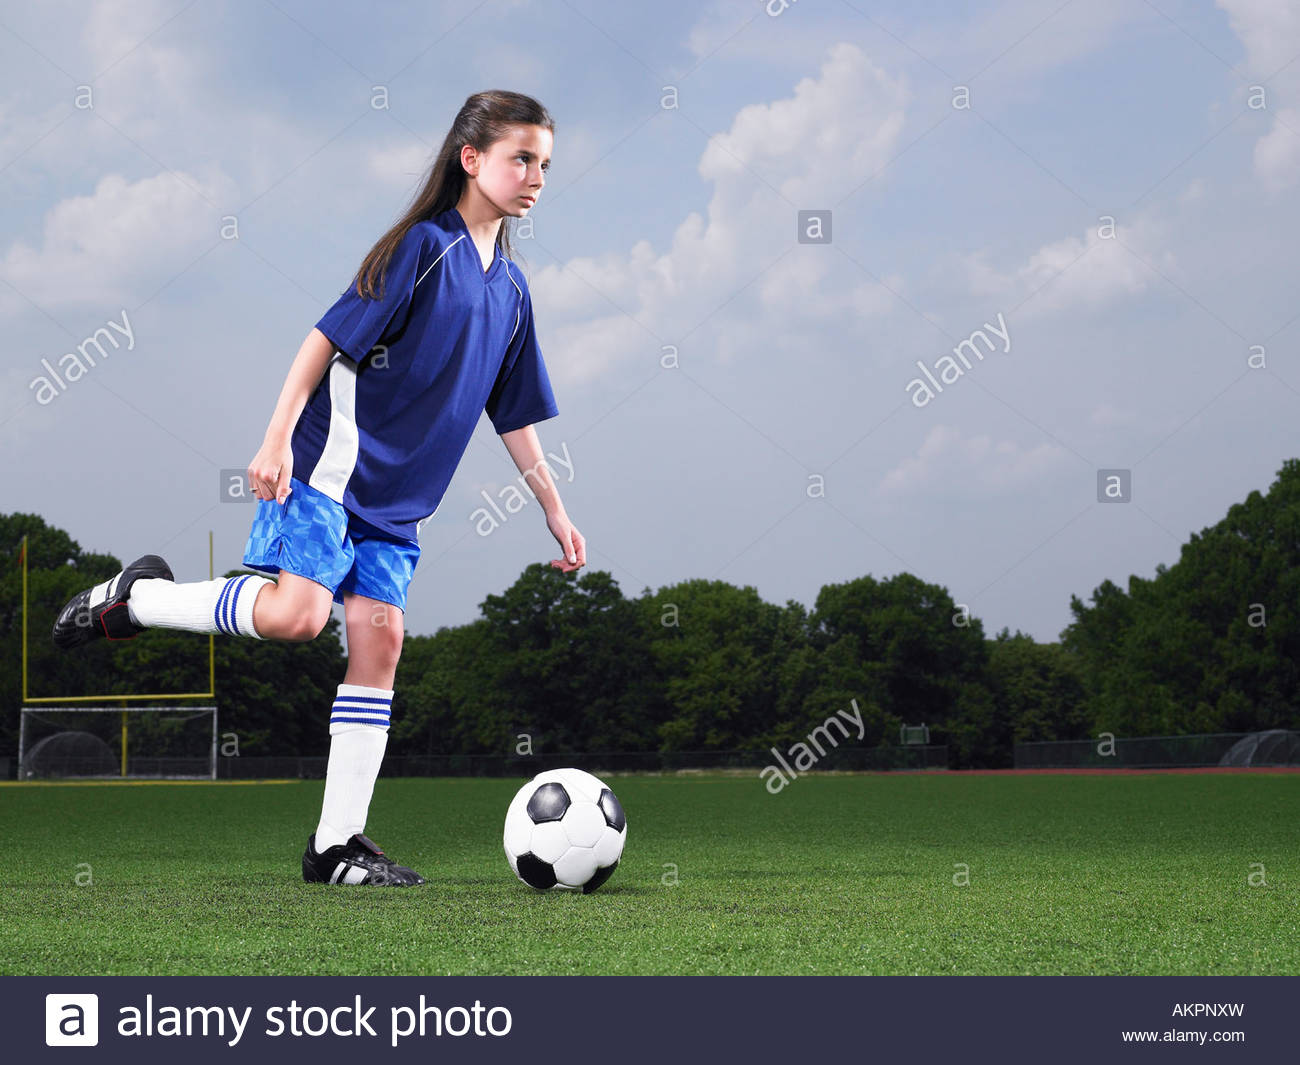 A footballer about to kick a football - Stock Image